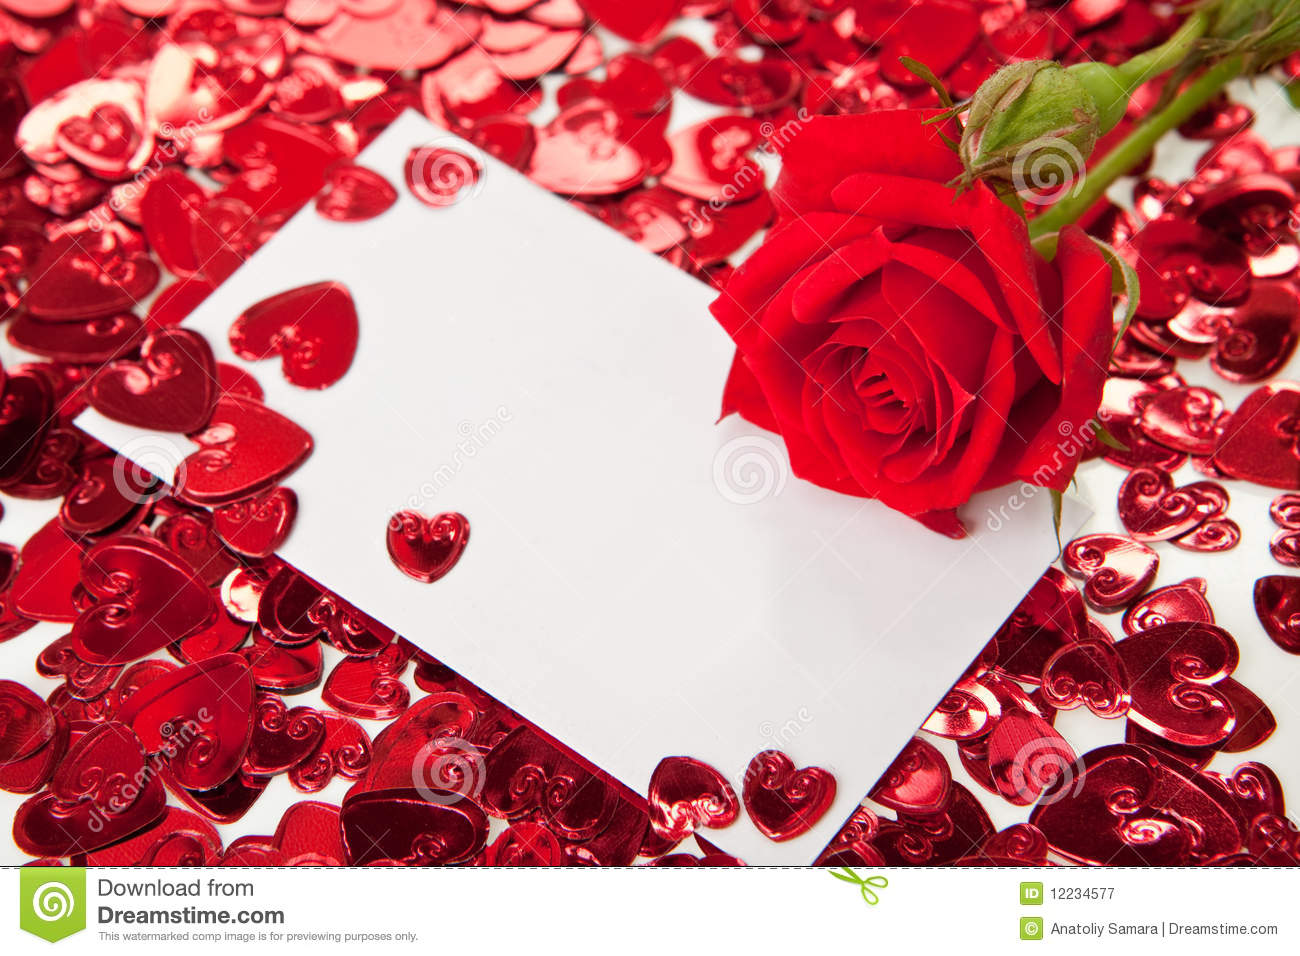 Online Marriage Invitation Card